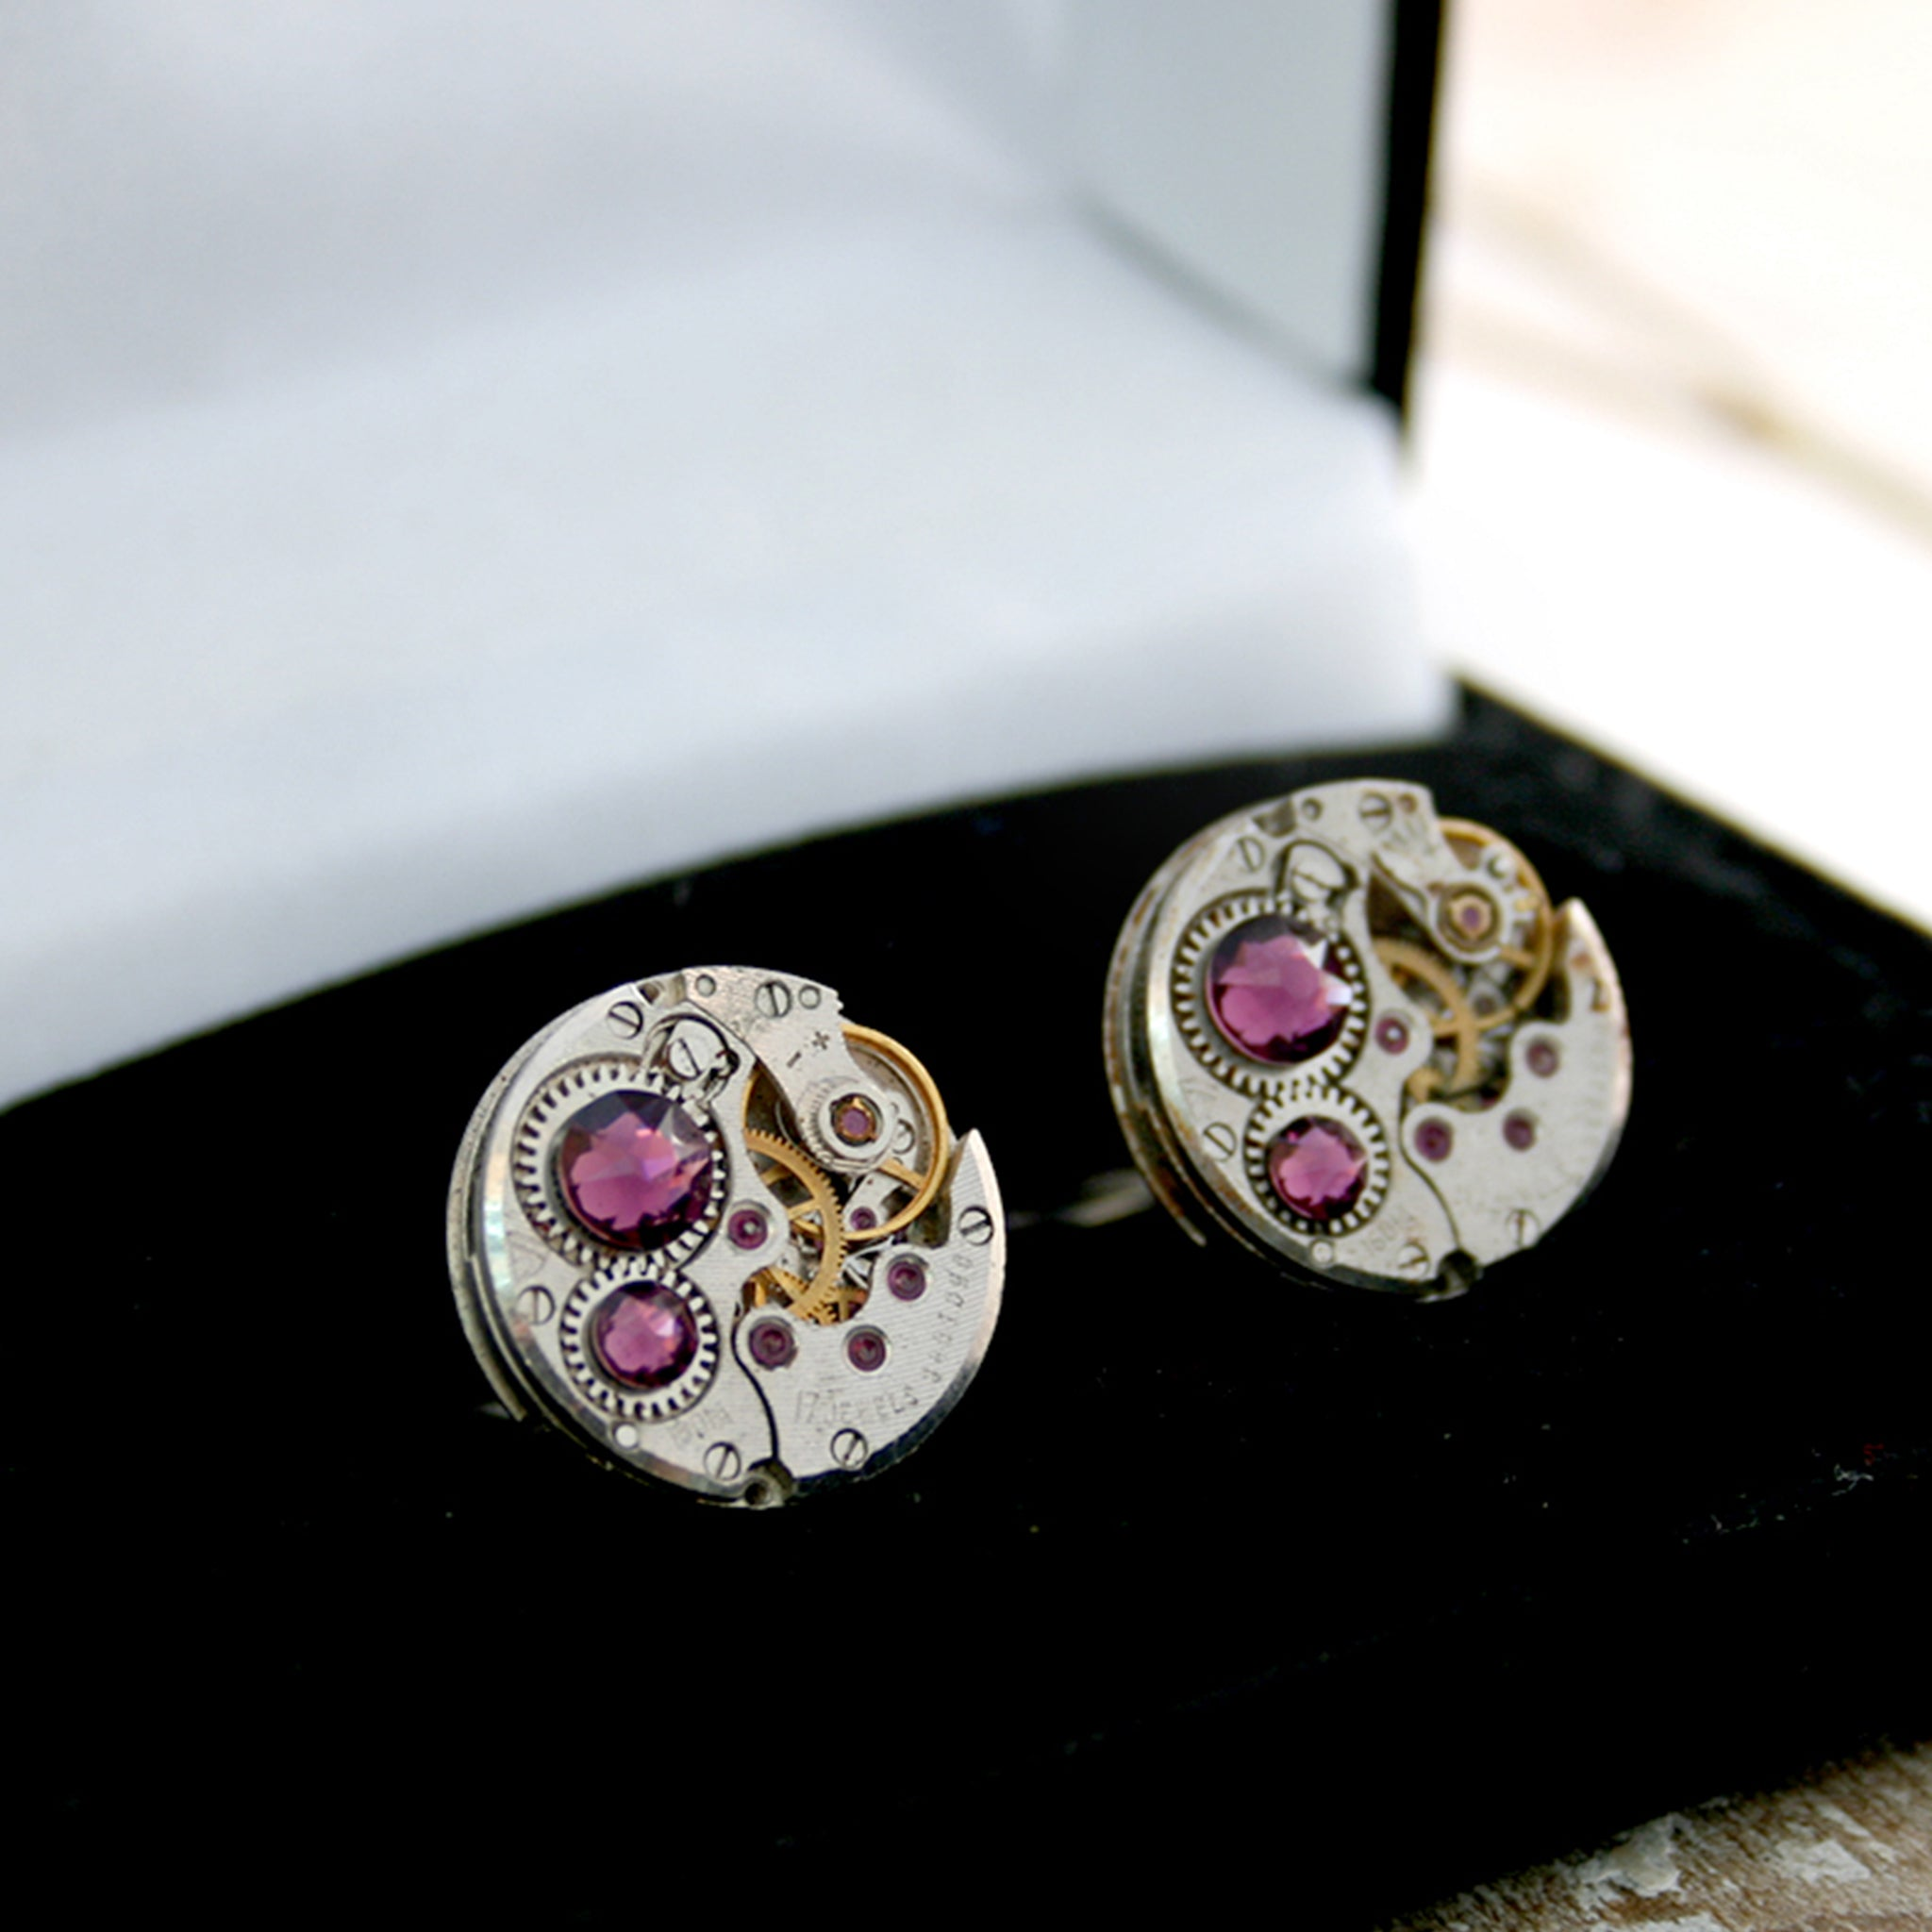 birthstone cufflinks in steampunk style featuring antique watch movements and Amethysts in a box